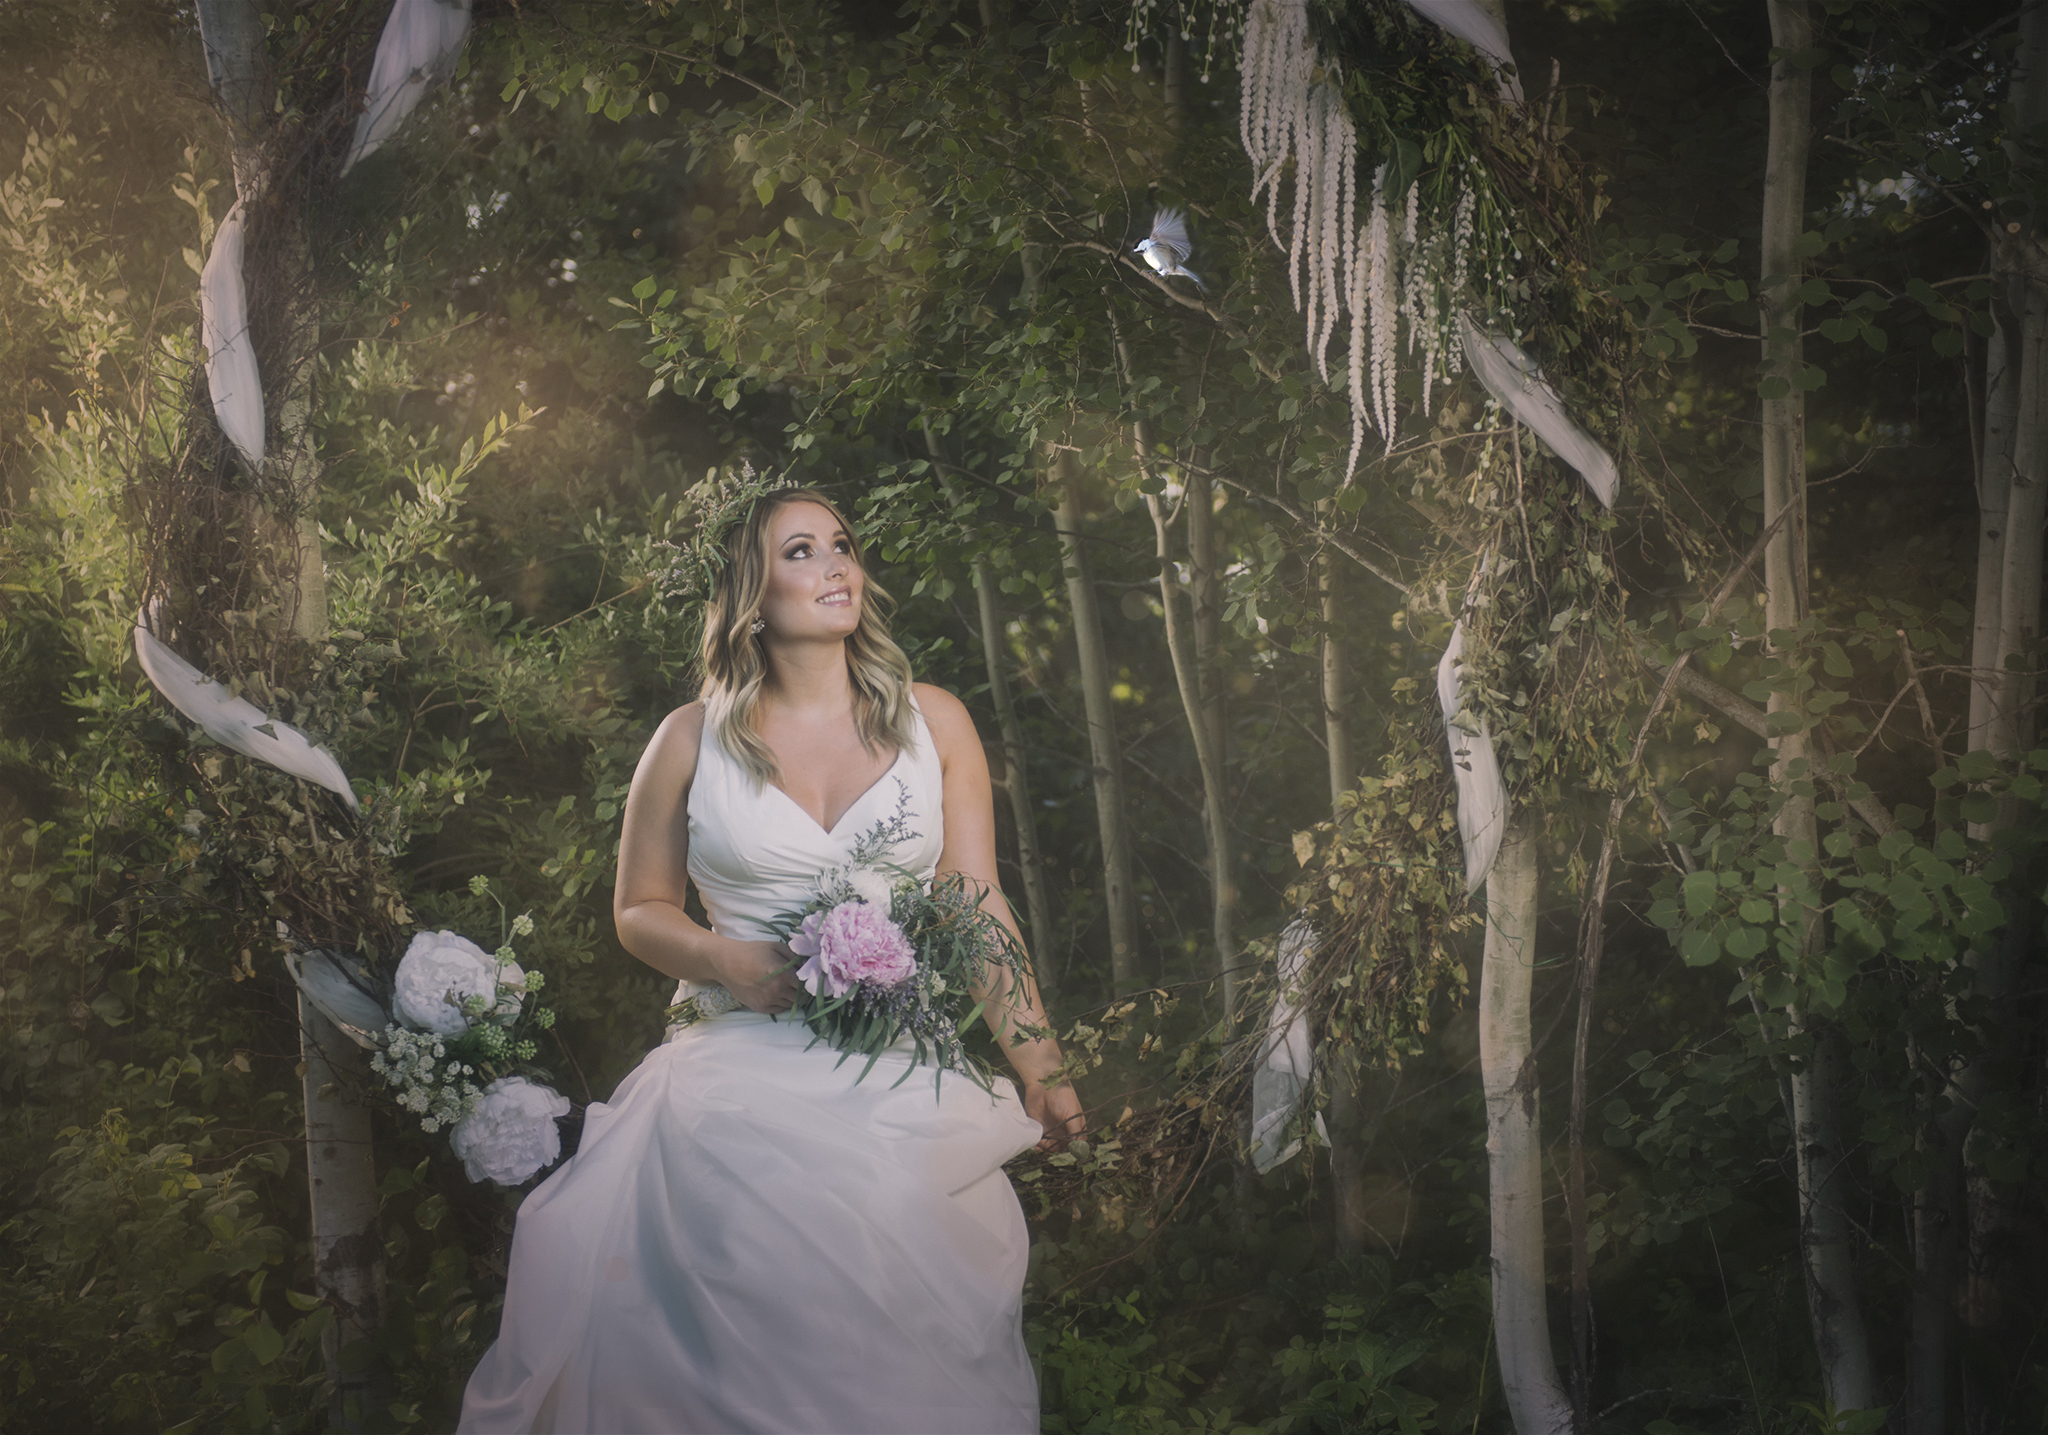 Fairytale Bride at Woodland + Wildflower Weddings